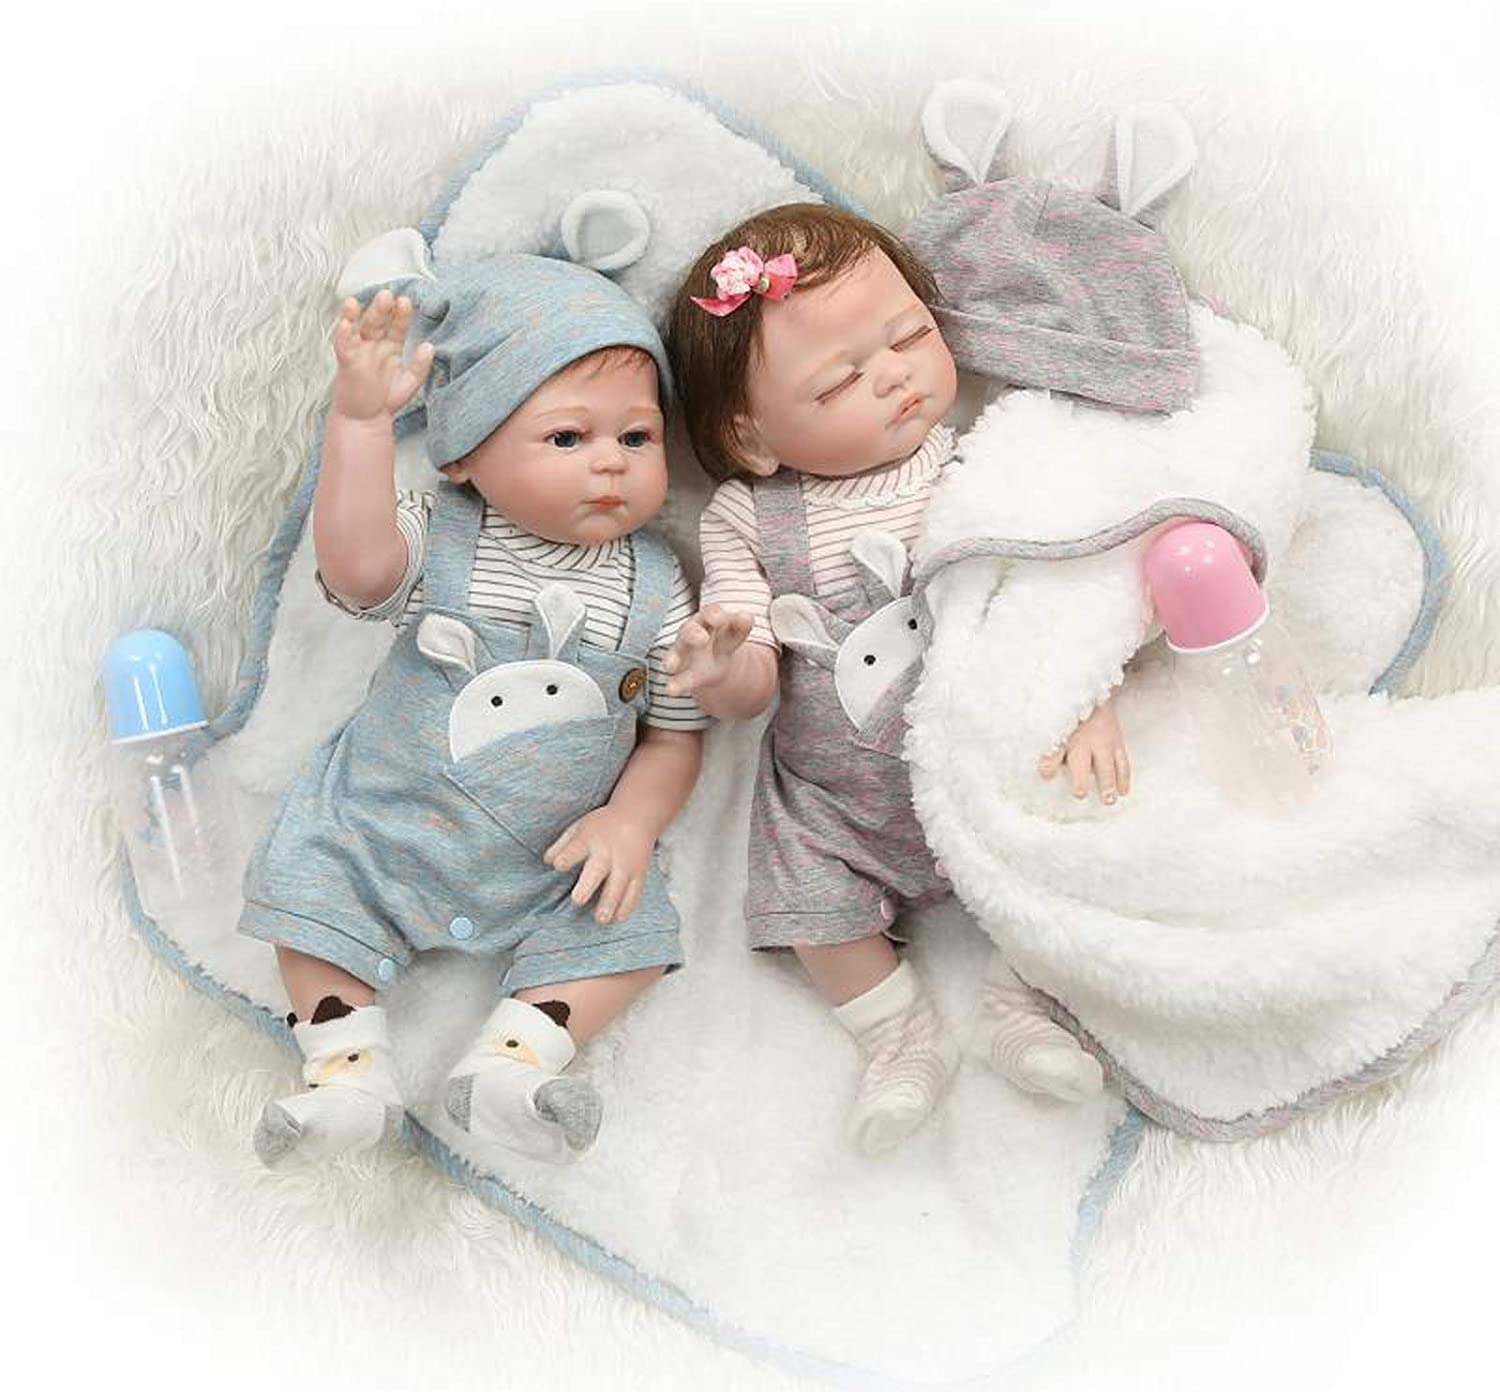 New Style Reborn Real Looking Baby New Born Full Vinyl Doll Kids Gift Toy Girl